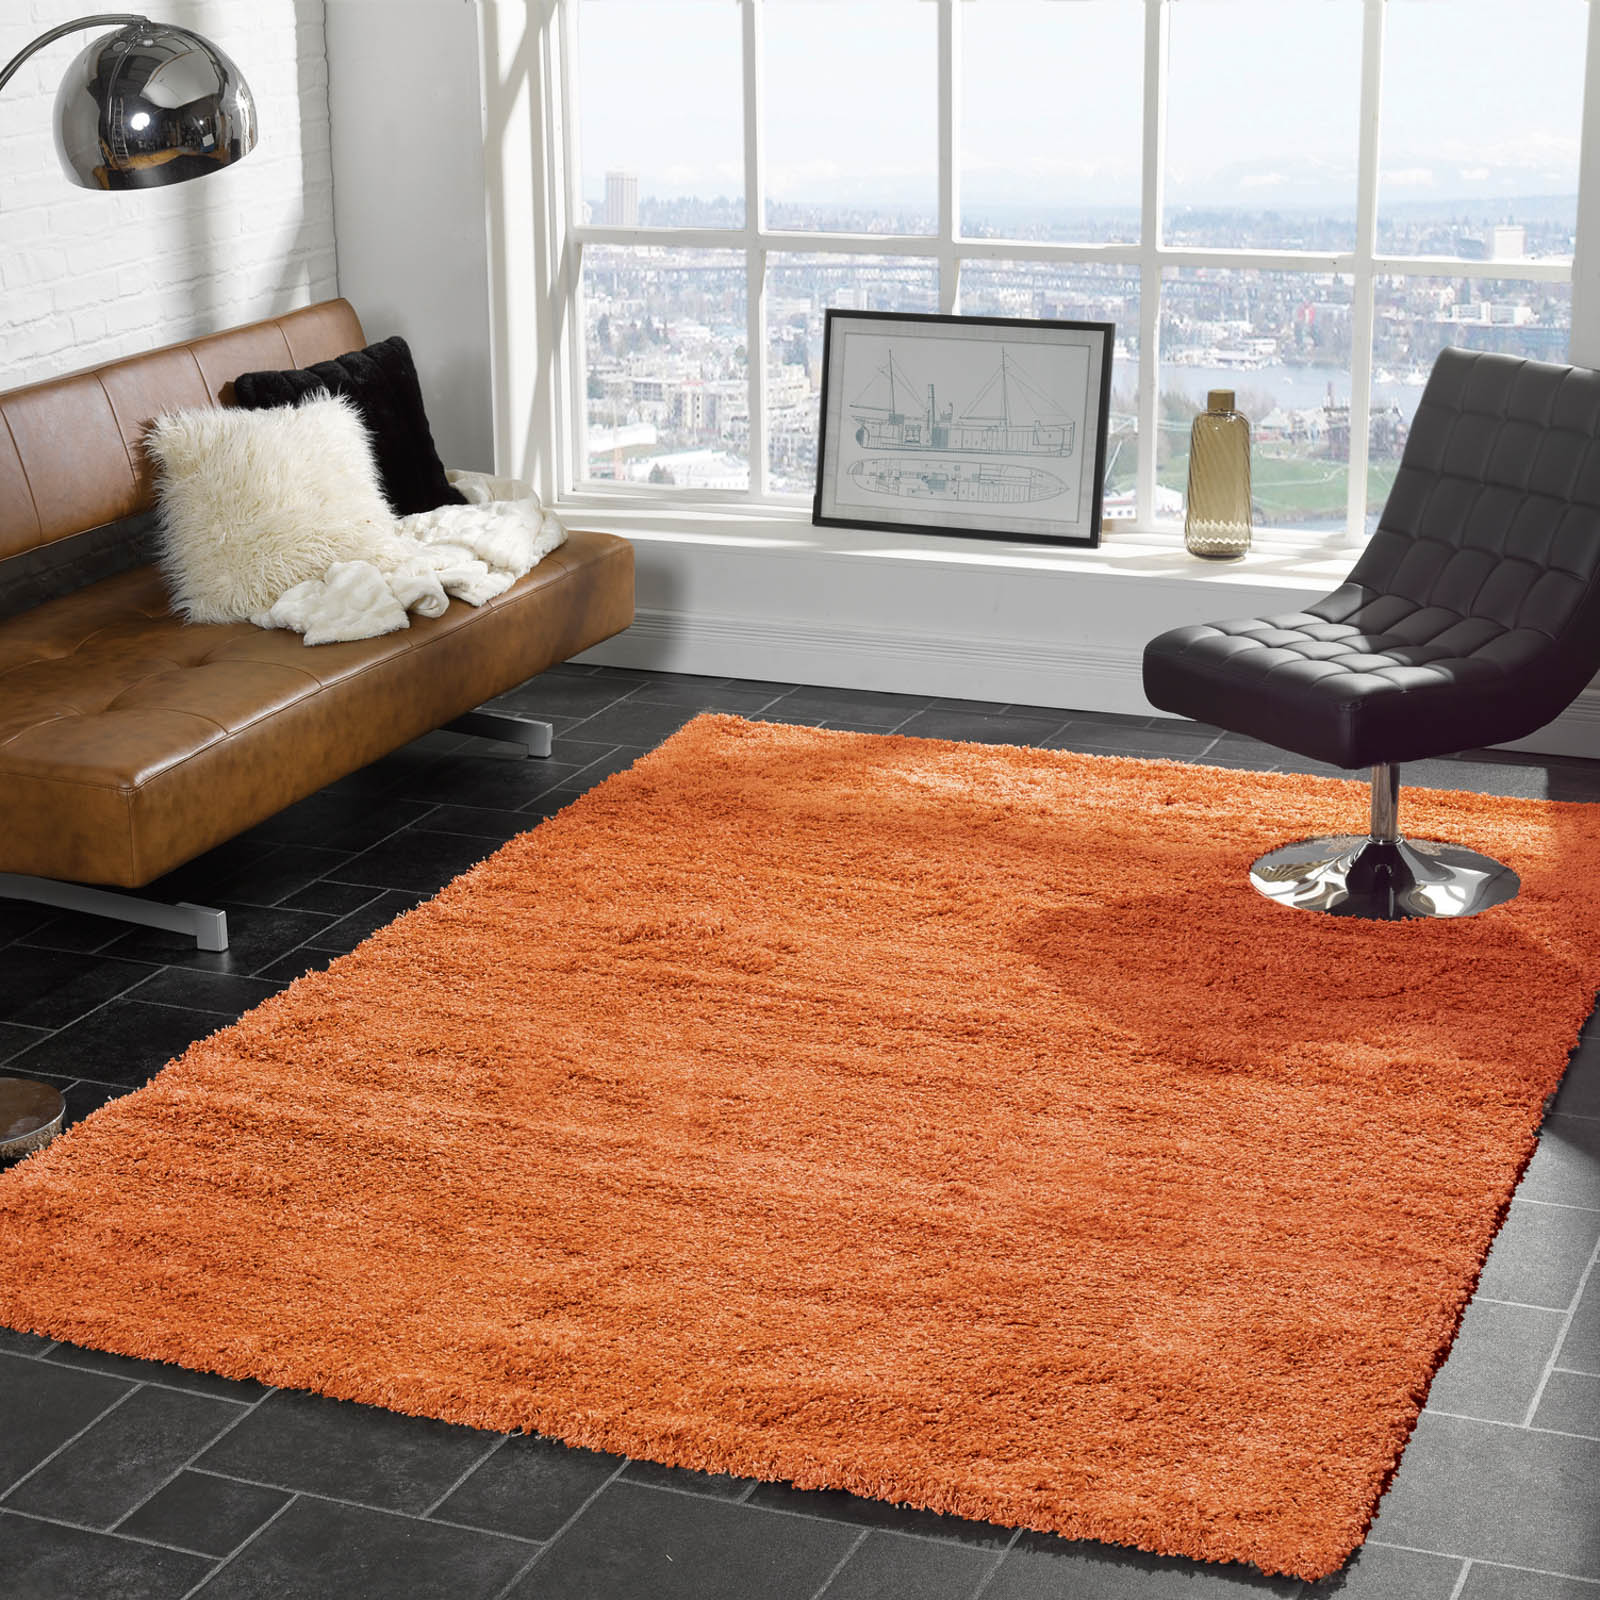 Discover how to stop rugs slipping on your floor by the rug seller rug on tiles dailygadgetfo Choice Image